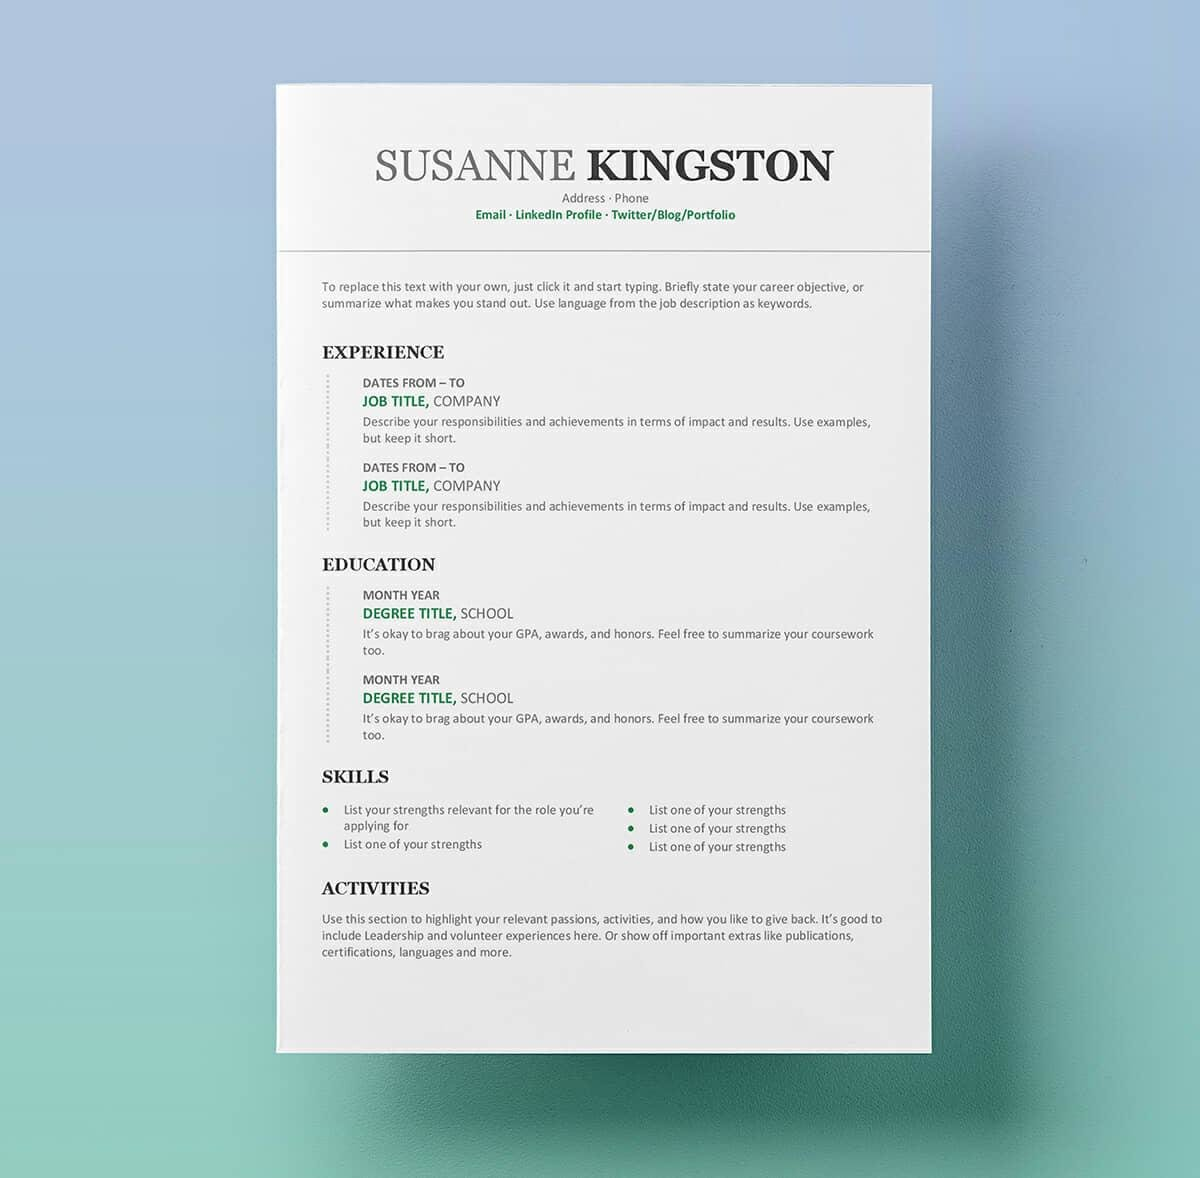 microsoft word resume with green details - Best Free Resume Templates